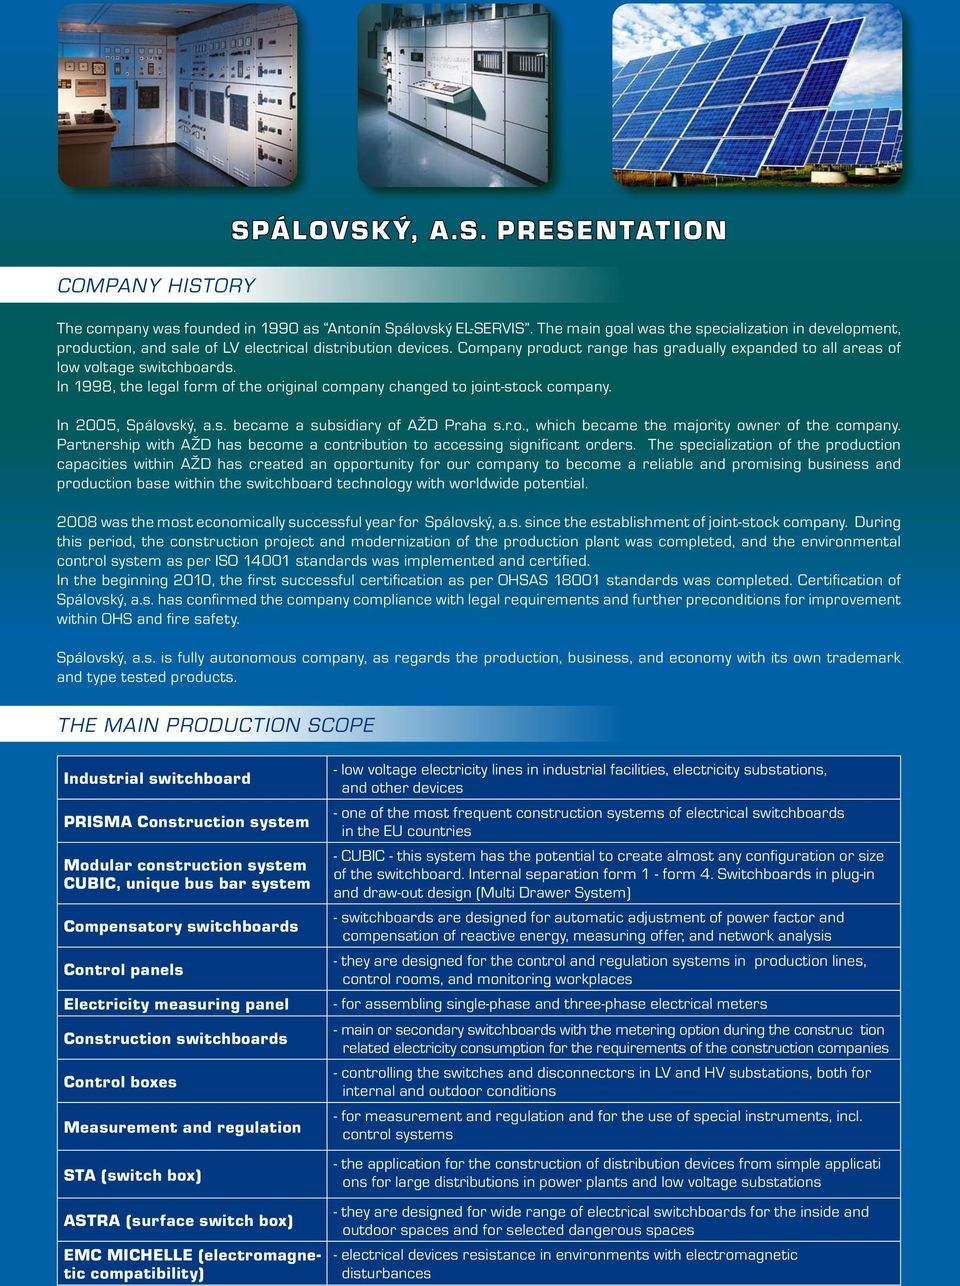 In 1998, the legal form of the original company changed to joint-stock company. In 2005, Spálovský, a.s. became a subsidiary of AŽD Praha s.r.o., which became the majority owner of the company.